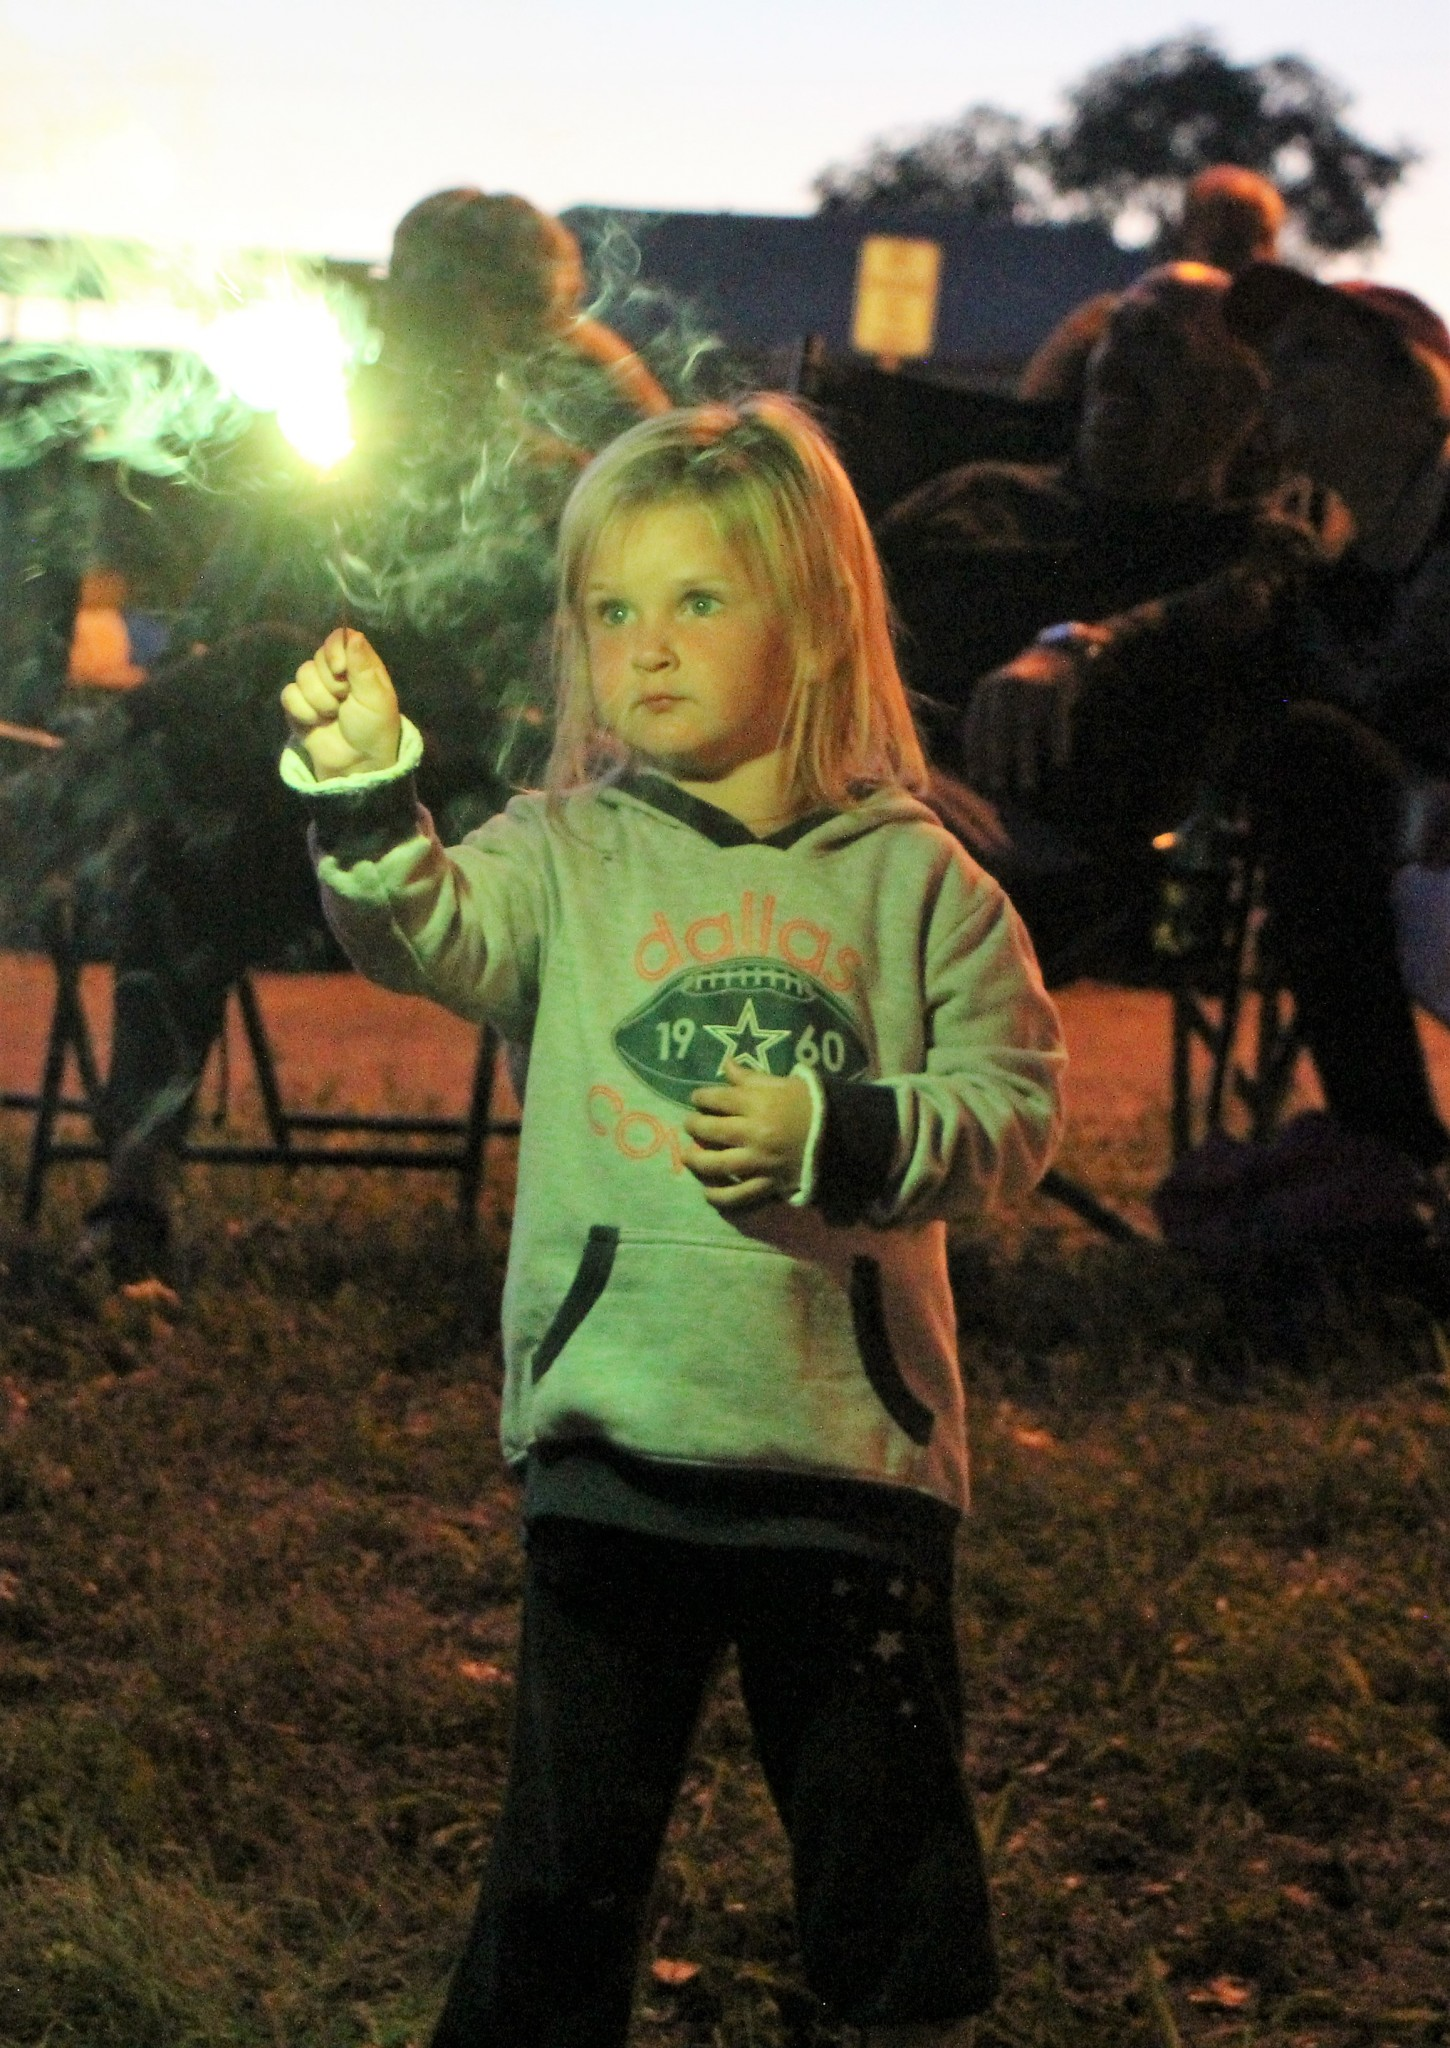 <strong>STAR PHOTO/Sharon Moore</strong><strong>Taylen Reid, 3, from Rigby, Idaho was visiting Miles City with her family for the CABA baseball tournament. She and her two sisters were enjoying sparklers by the Natural Oasis.</strong>